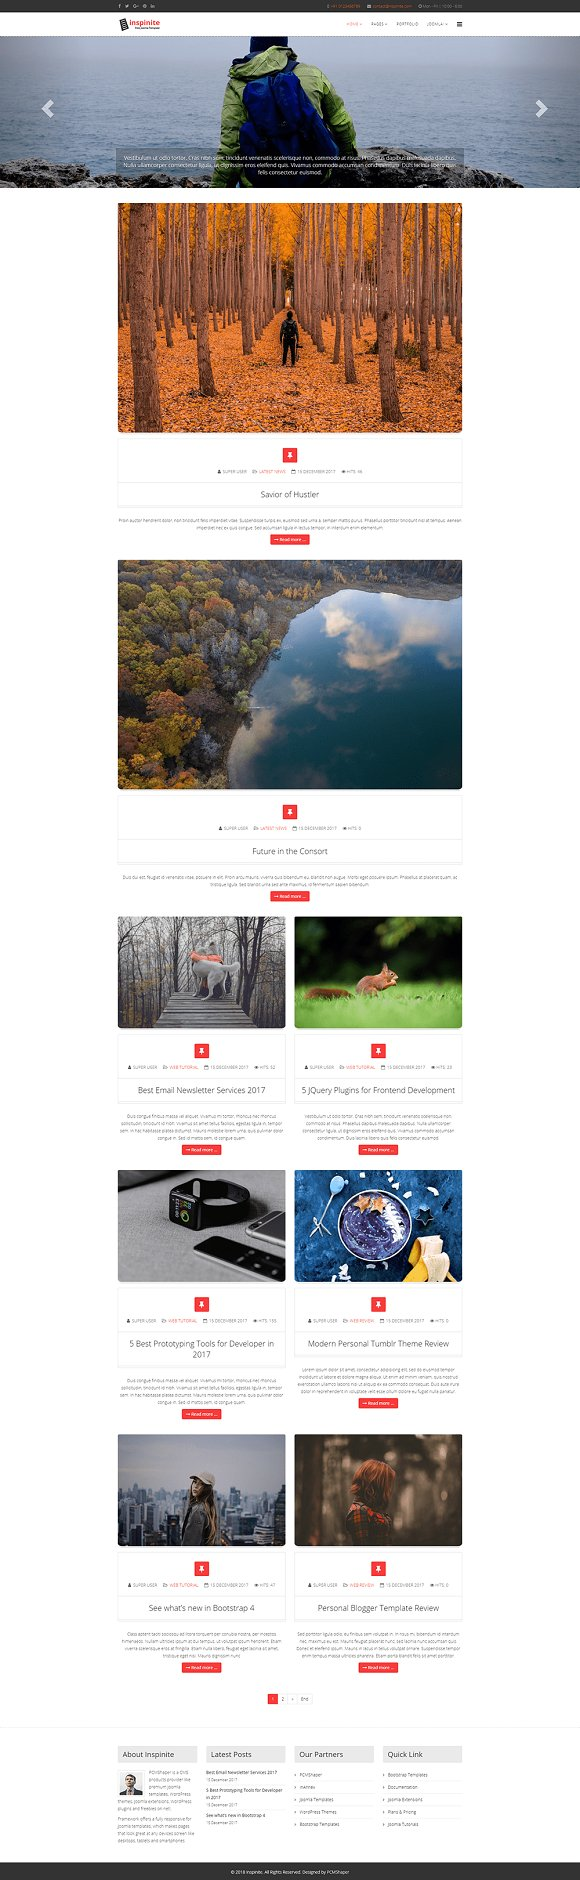 Inspinite Blog Joomla Template